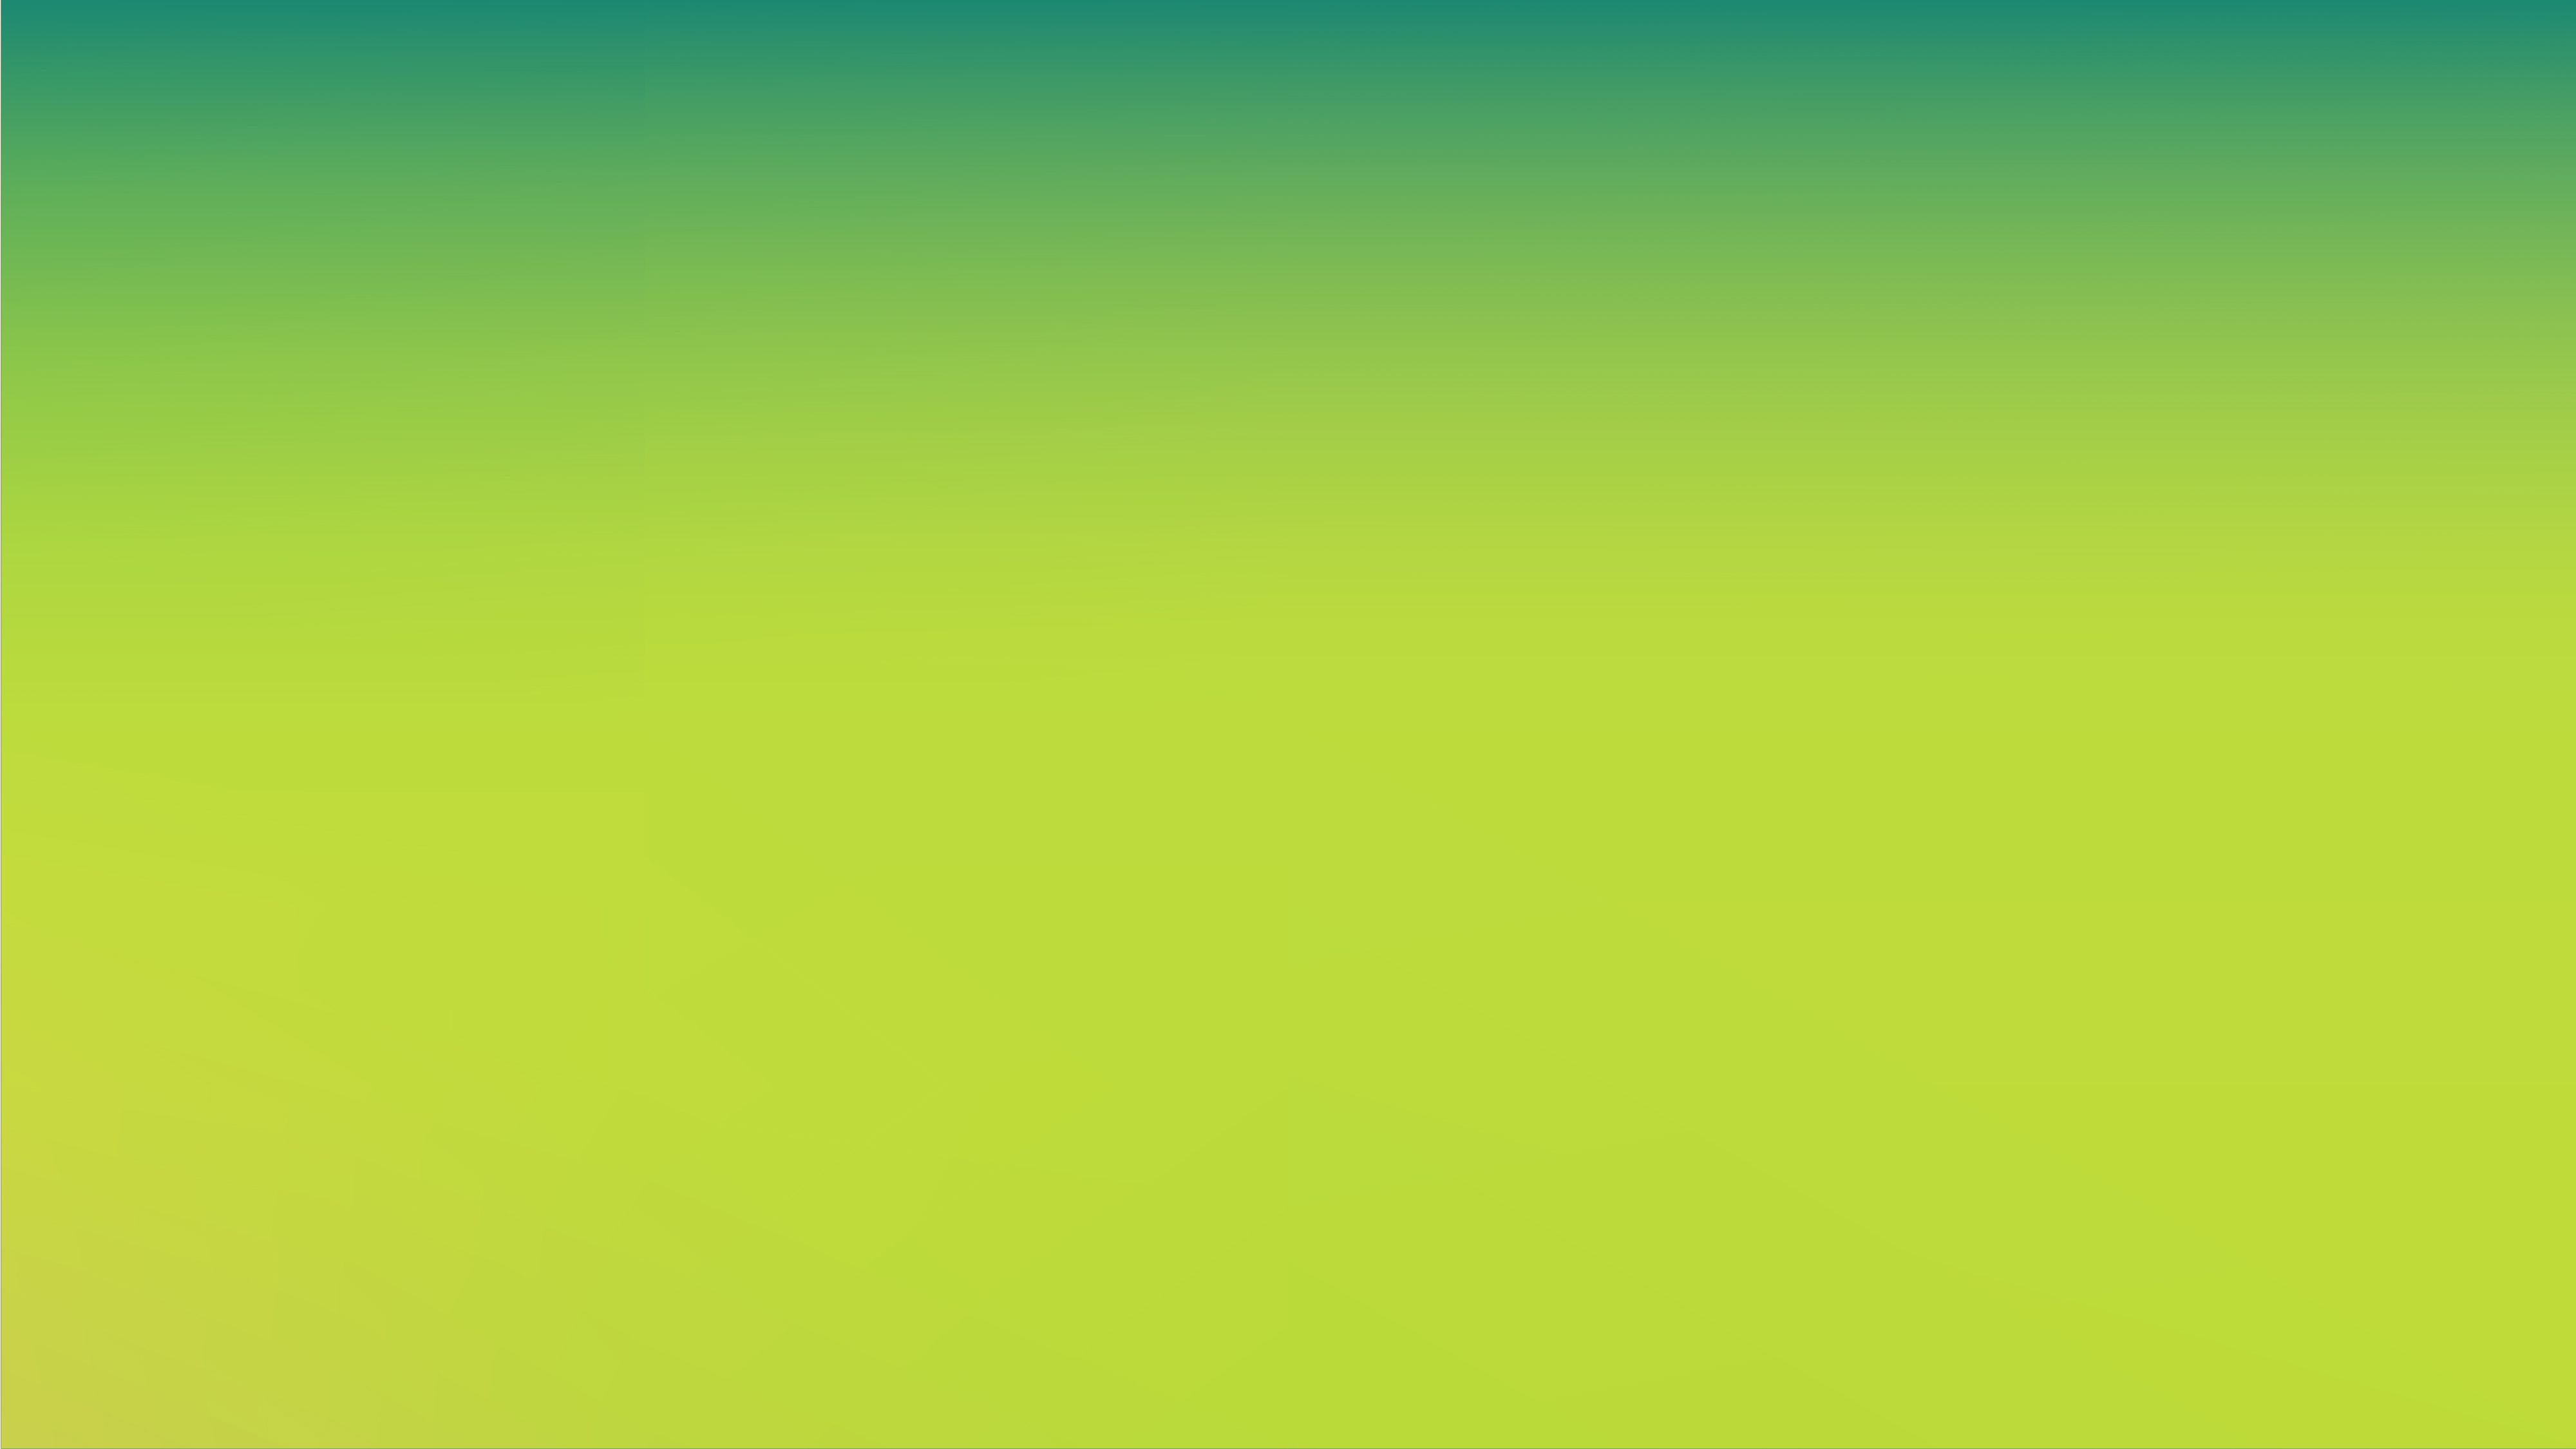 Green Yellow Text Free Background Image Design Graphicdesign Creative Wallpaper Background Ch Behr Paint Colors Solid Color Backgrounds Behr Paint